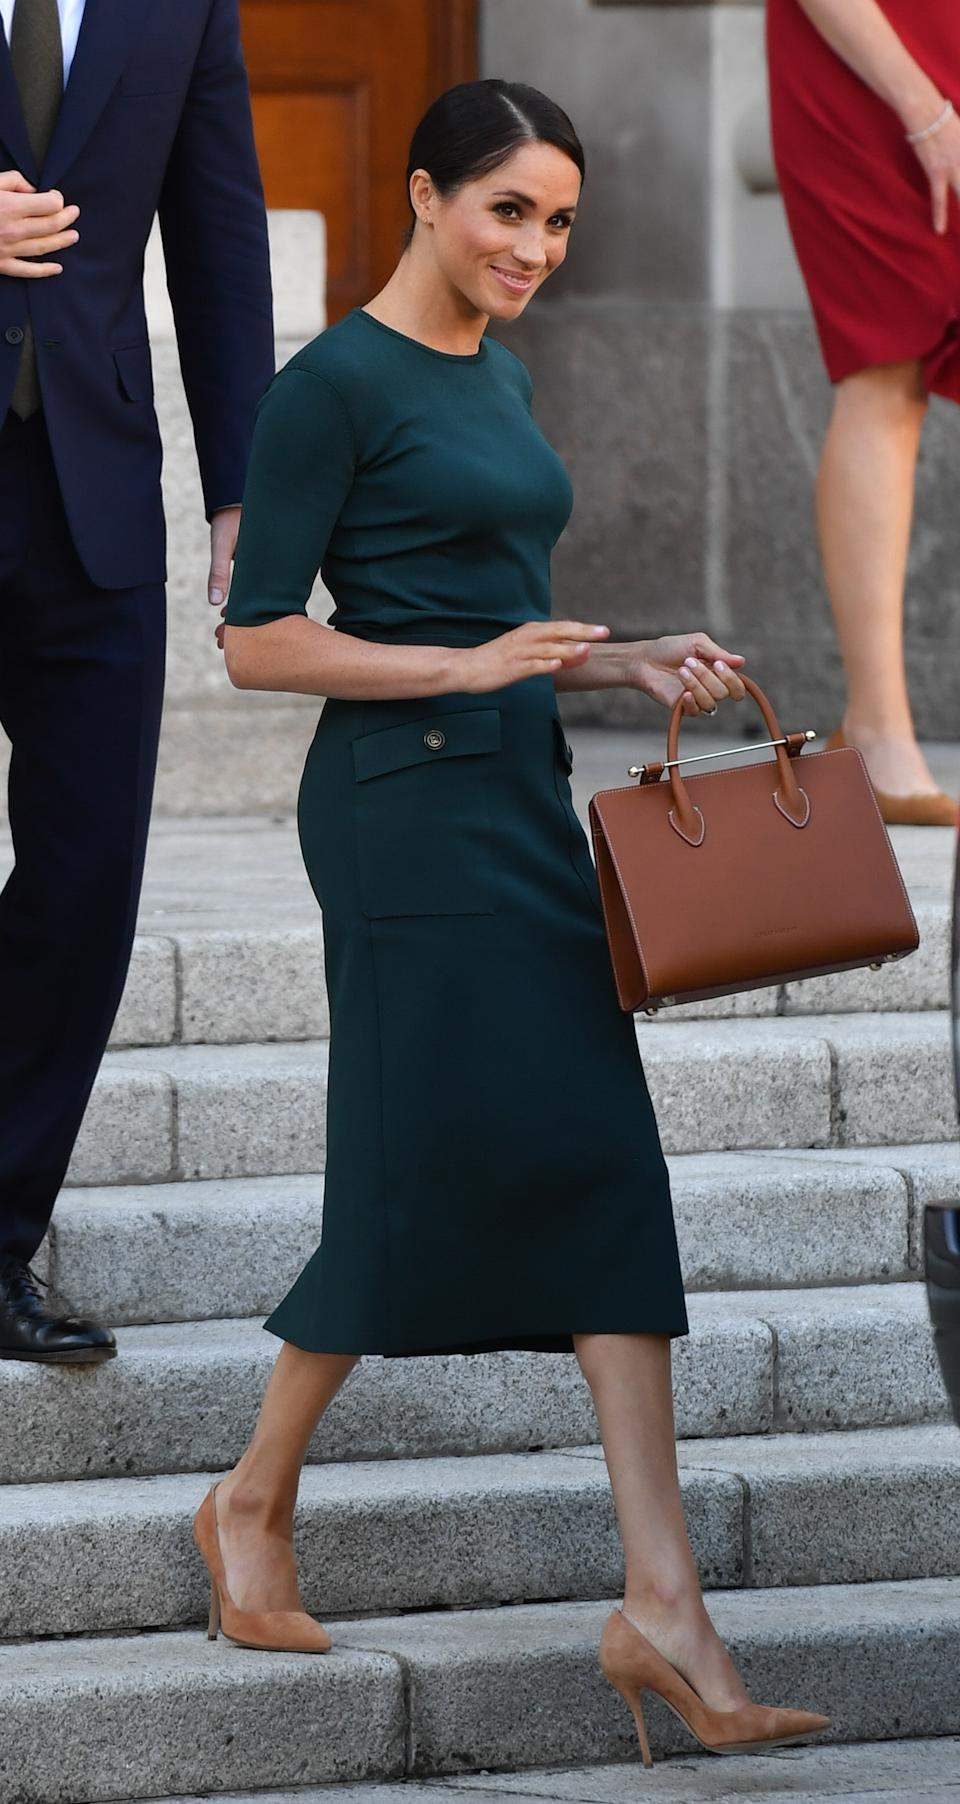 In a look reminiscent of her 'Suits' days, the Duchess of Sussex wore a suitably Irish green Givenchy dress for a trip to the Emerald Isle. A £545 Strathberry midi tote finished the look. <em>[Photo: Getty]</em>